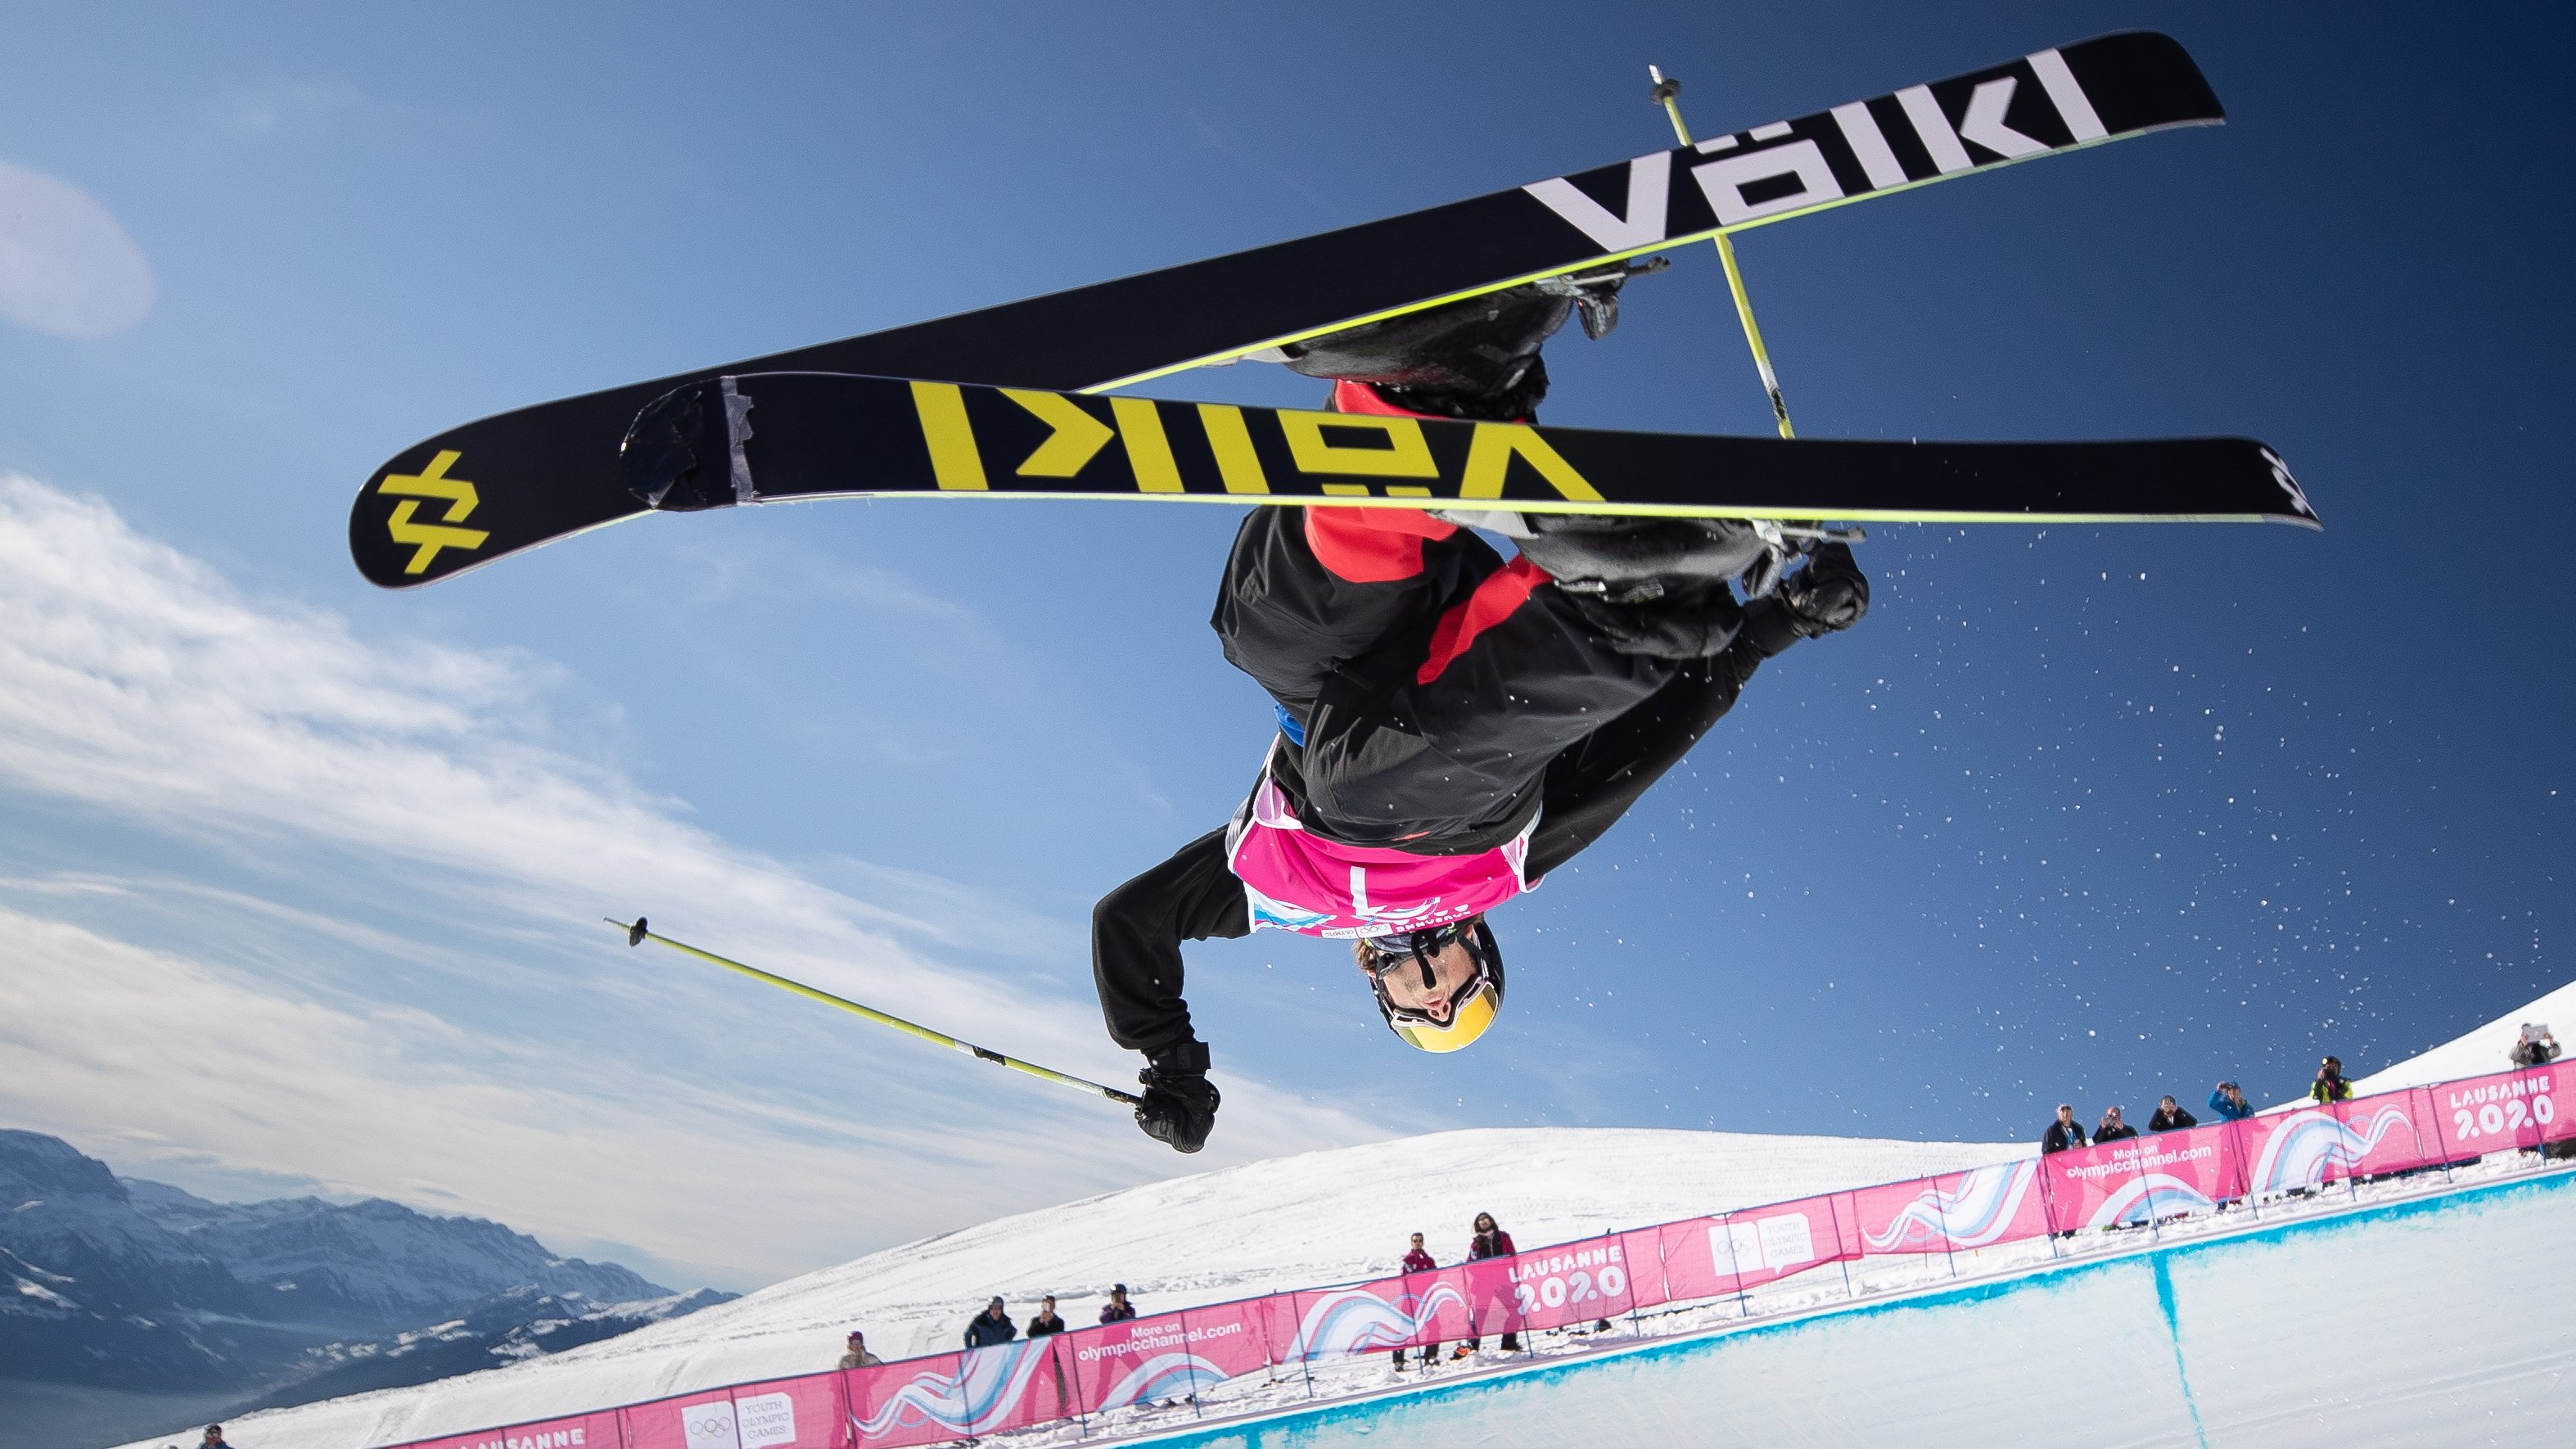 Andrew Longino performs a trick in the halfpipe